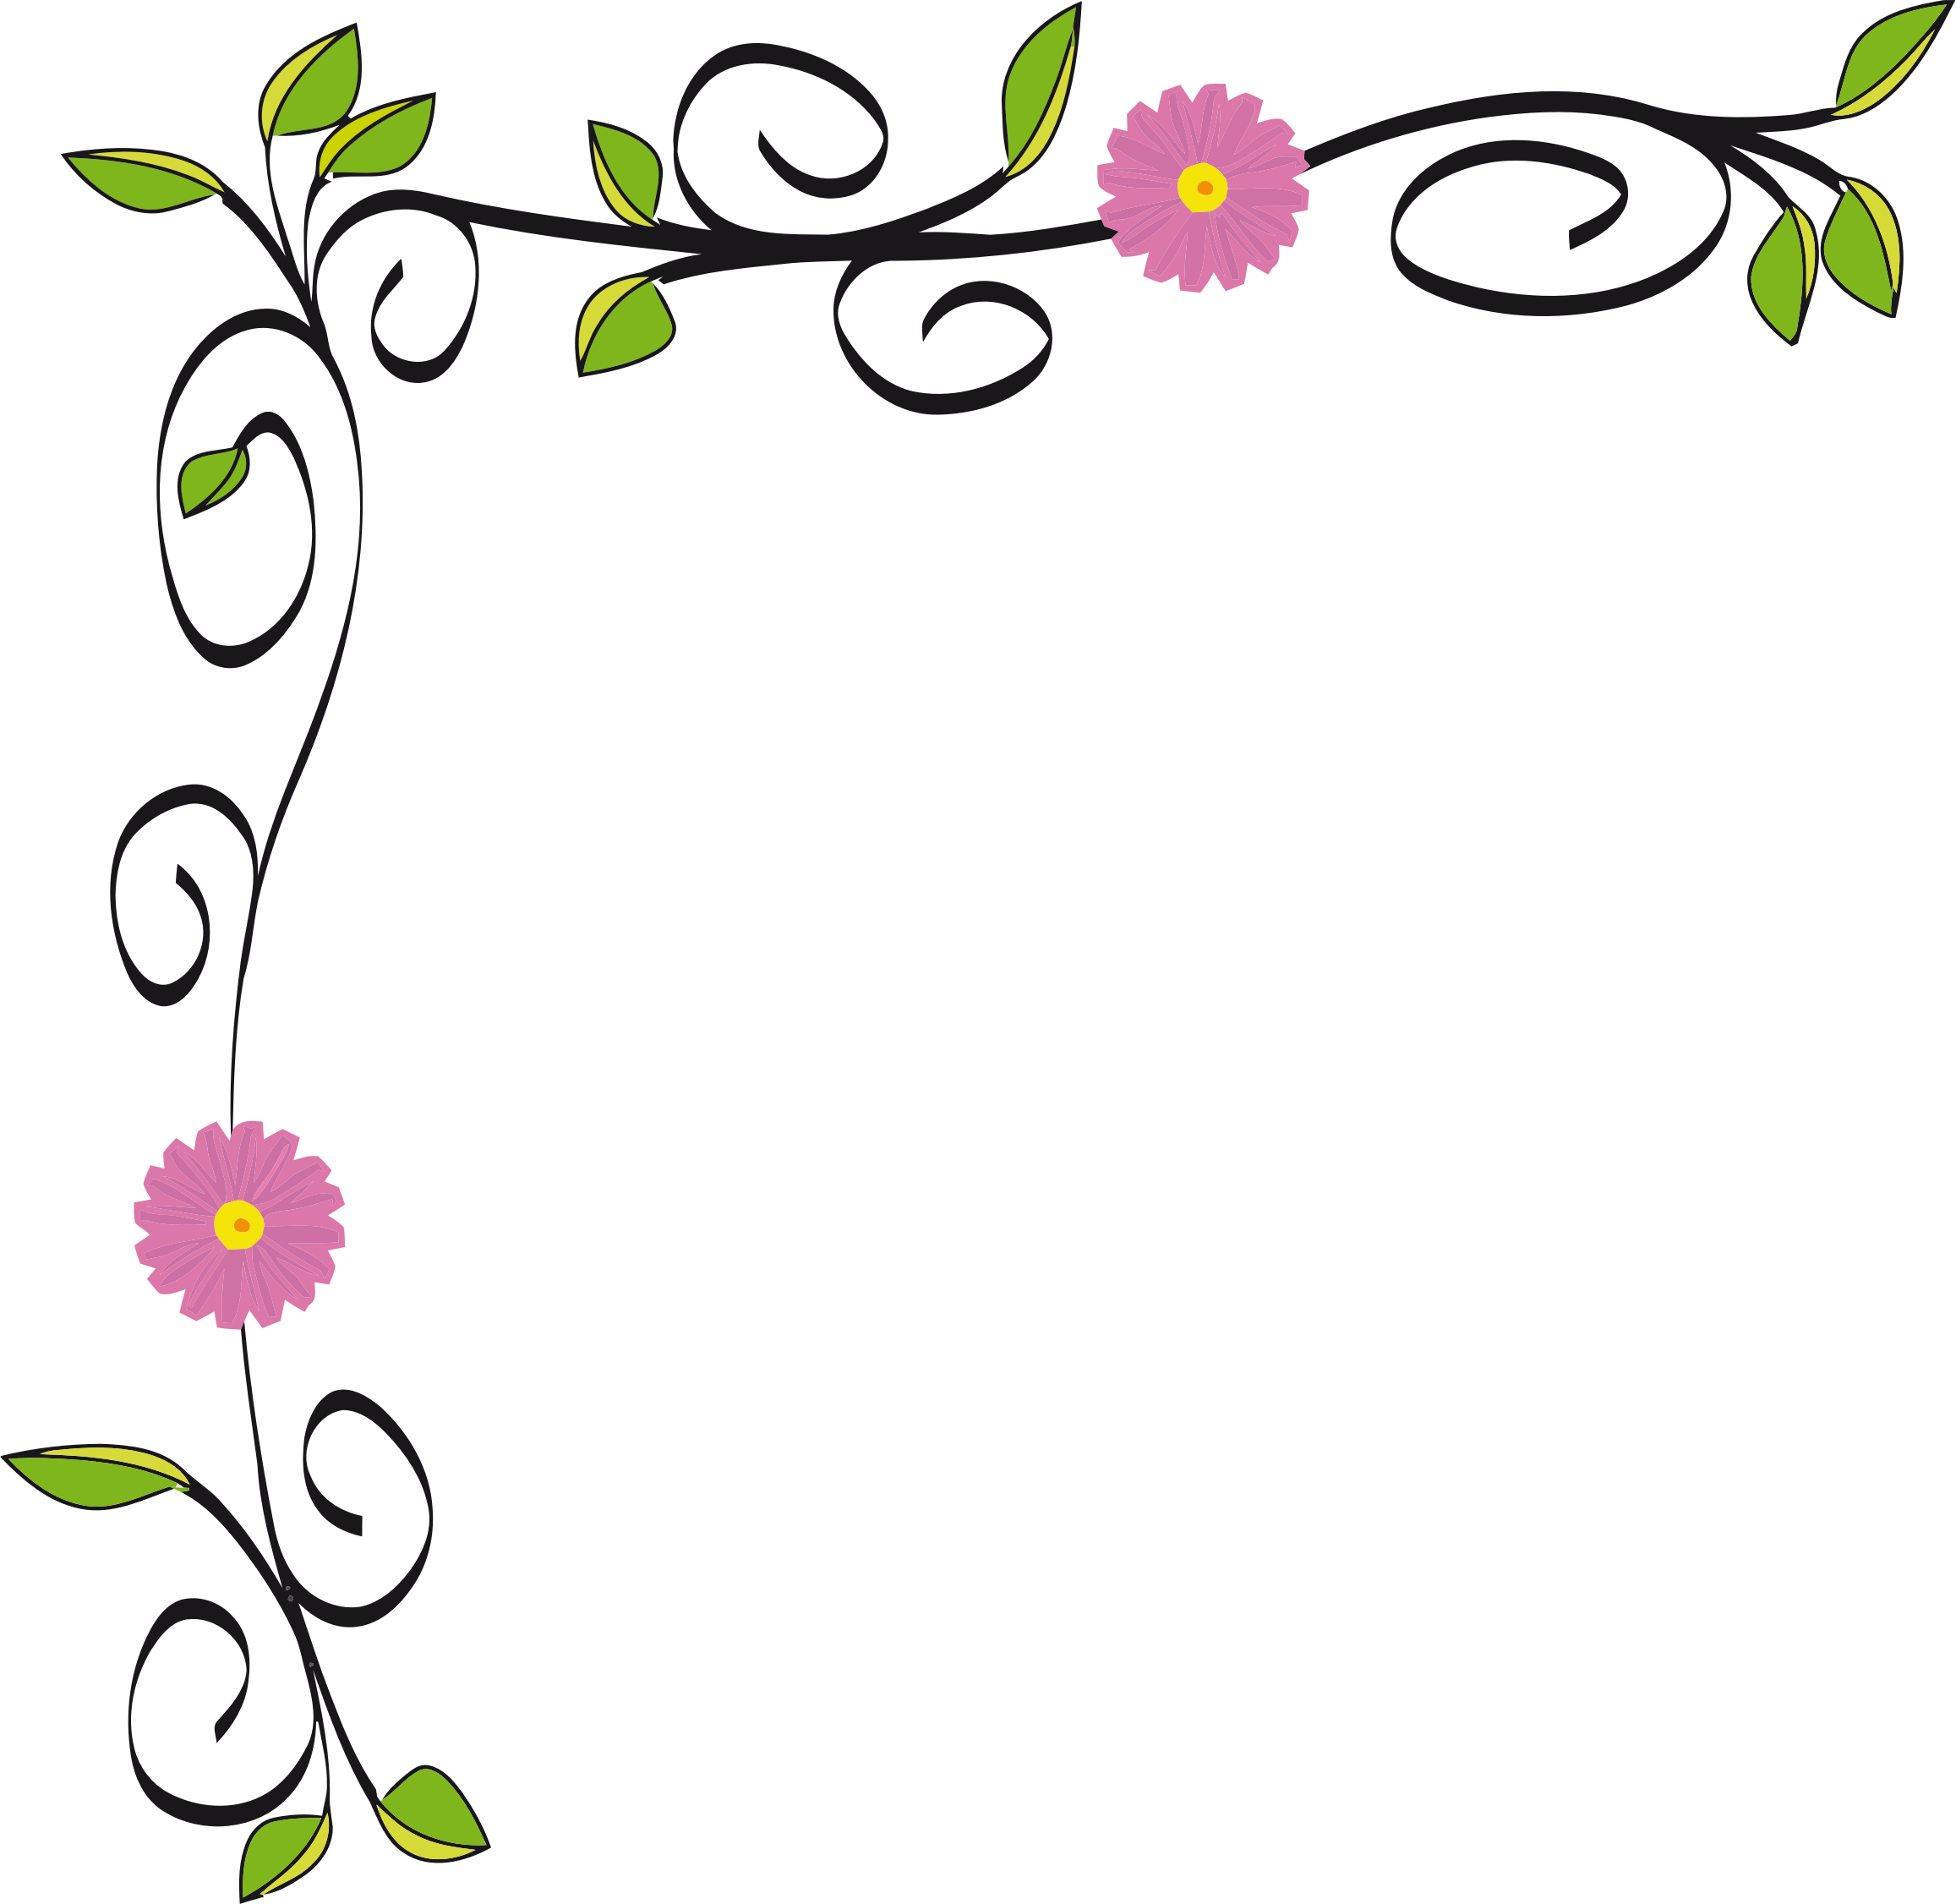 Floral vectorized by gdj. Flower border design clipart